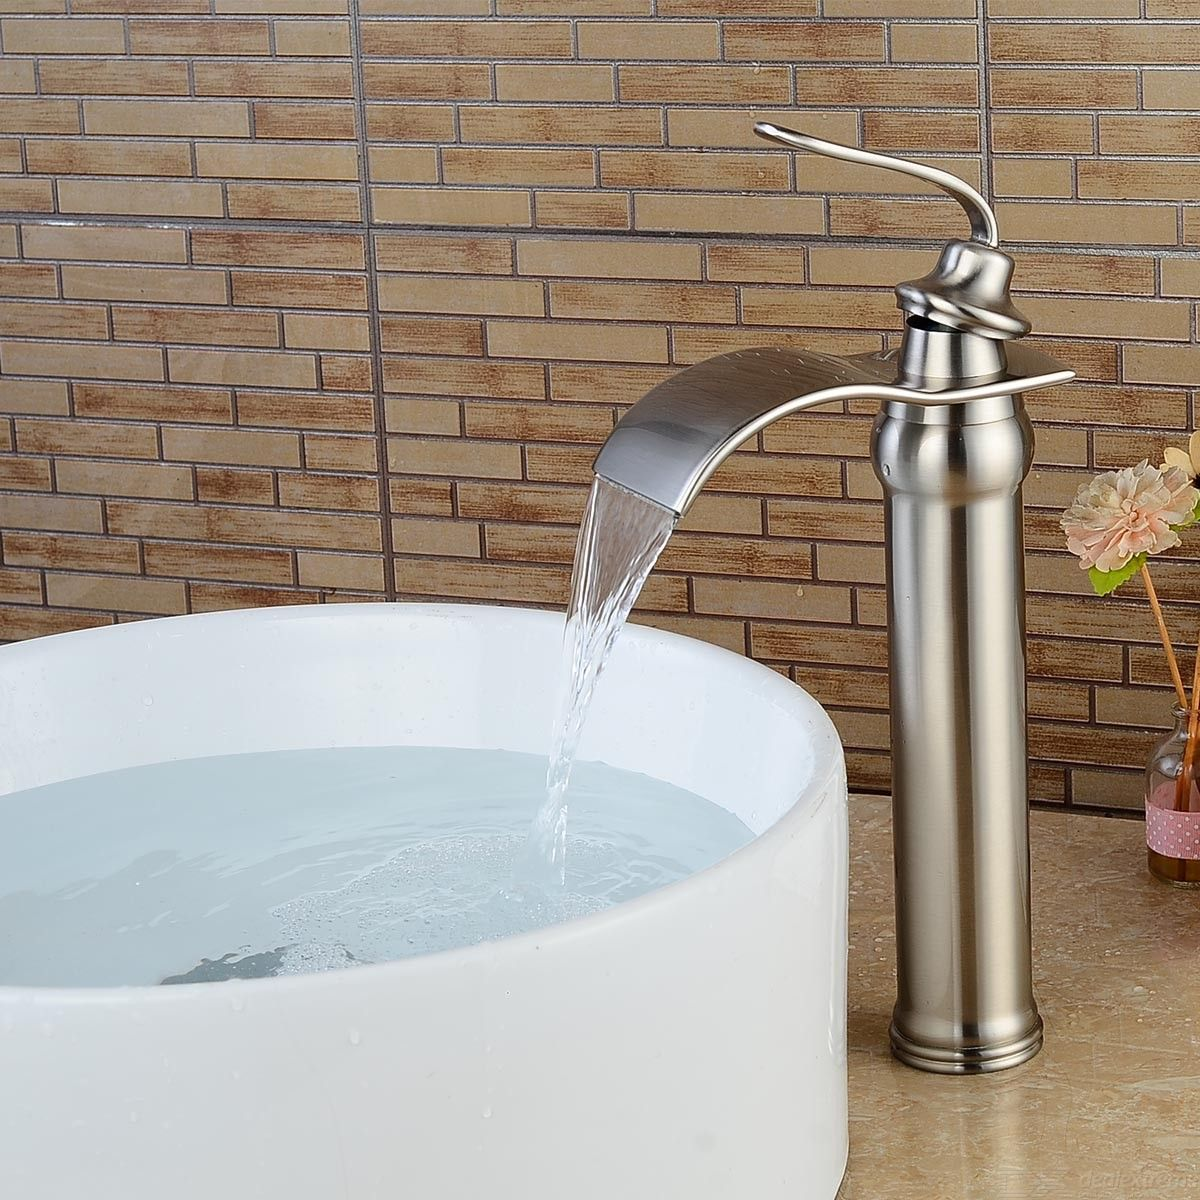 F-0790N1 Bathroom Sink Faucet - Waterfall Brushed Centerset Single Handle One Hole Bath Taps / Brass